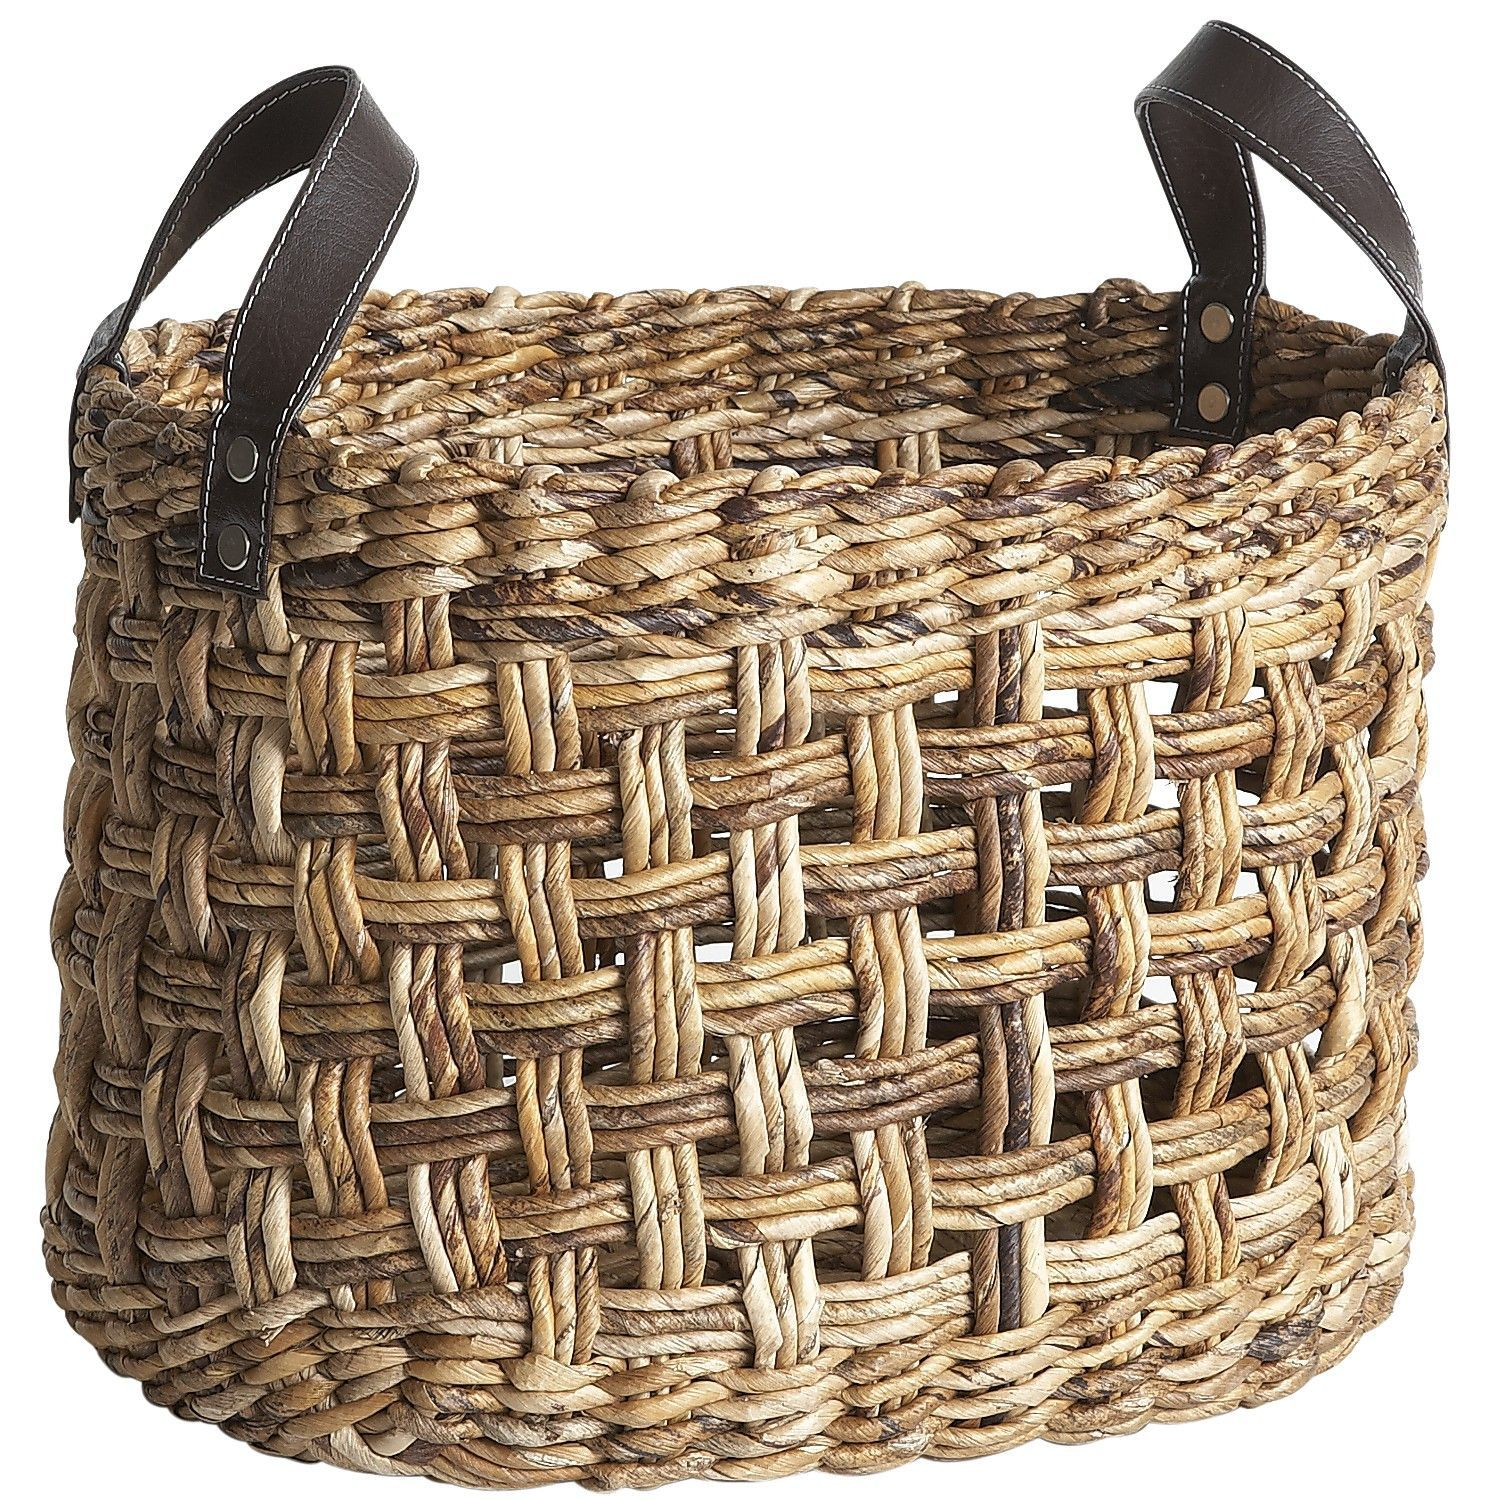 Basket Weaving With Leaves : For ficus banana leaf plaid weave basket living room